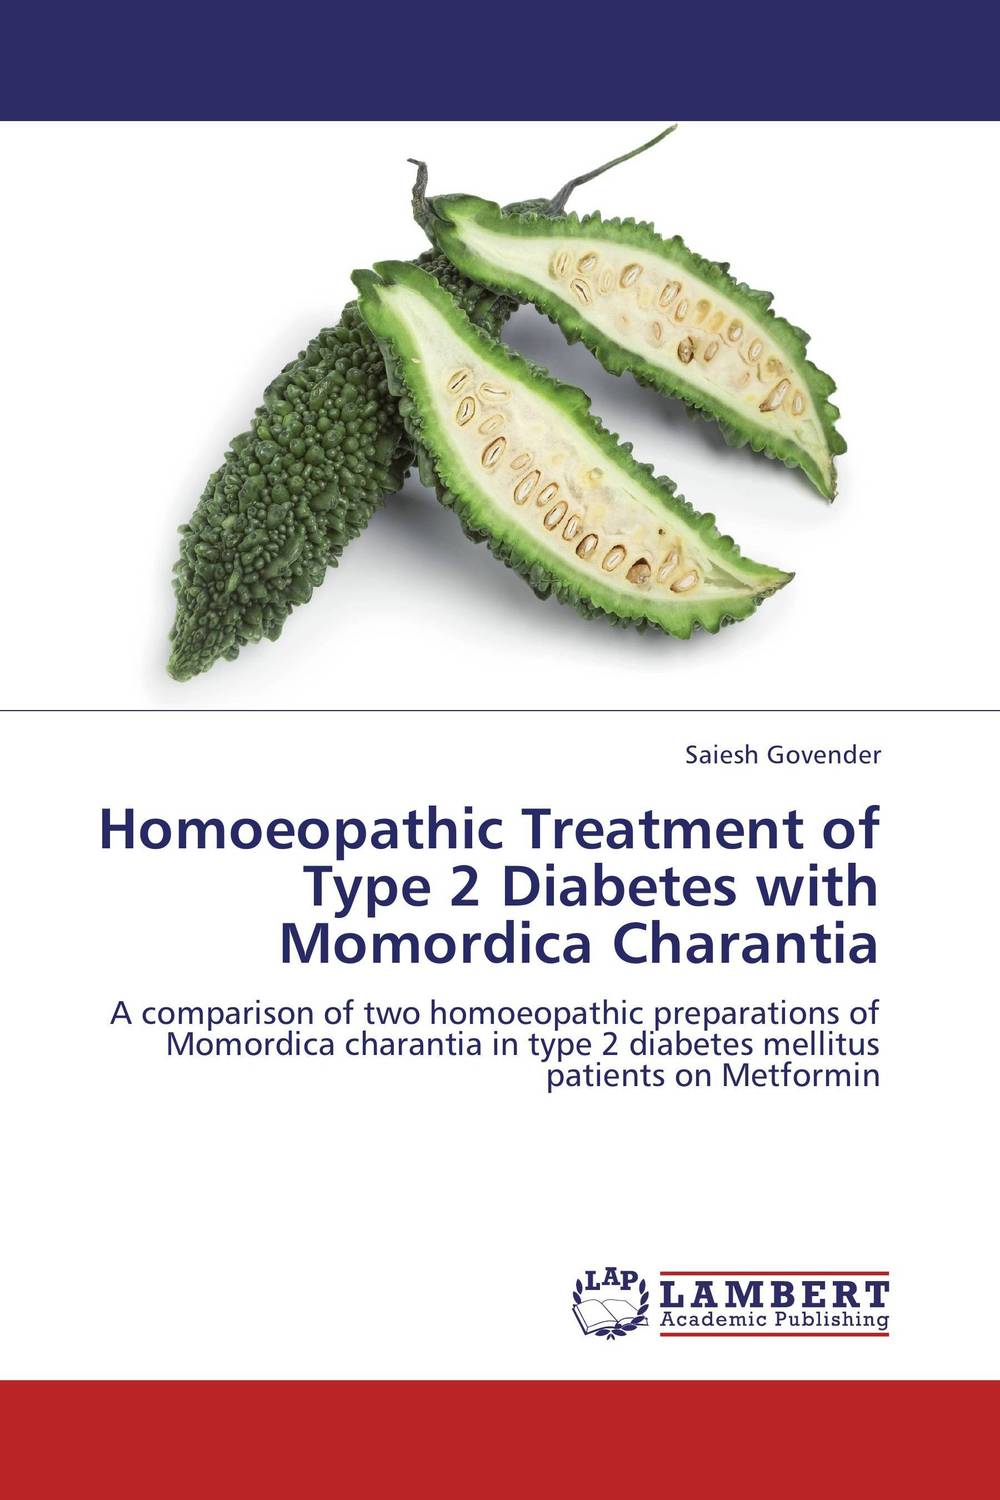 Homoeopathic Treatment of Type 2 Diabetes with Momordica Charantia sharad leve rakesh verma and rakesh kumar dixit role of irbesartan and curcumin in type 2 diabetes mellitus